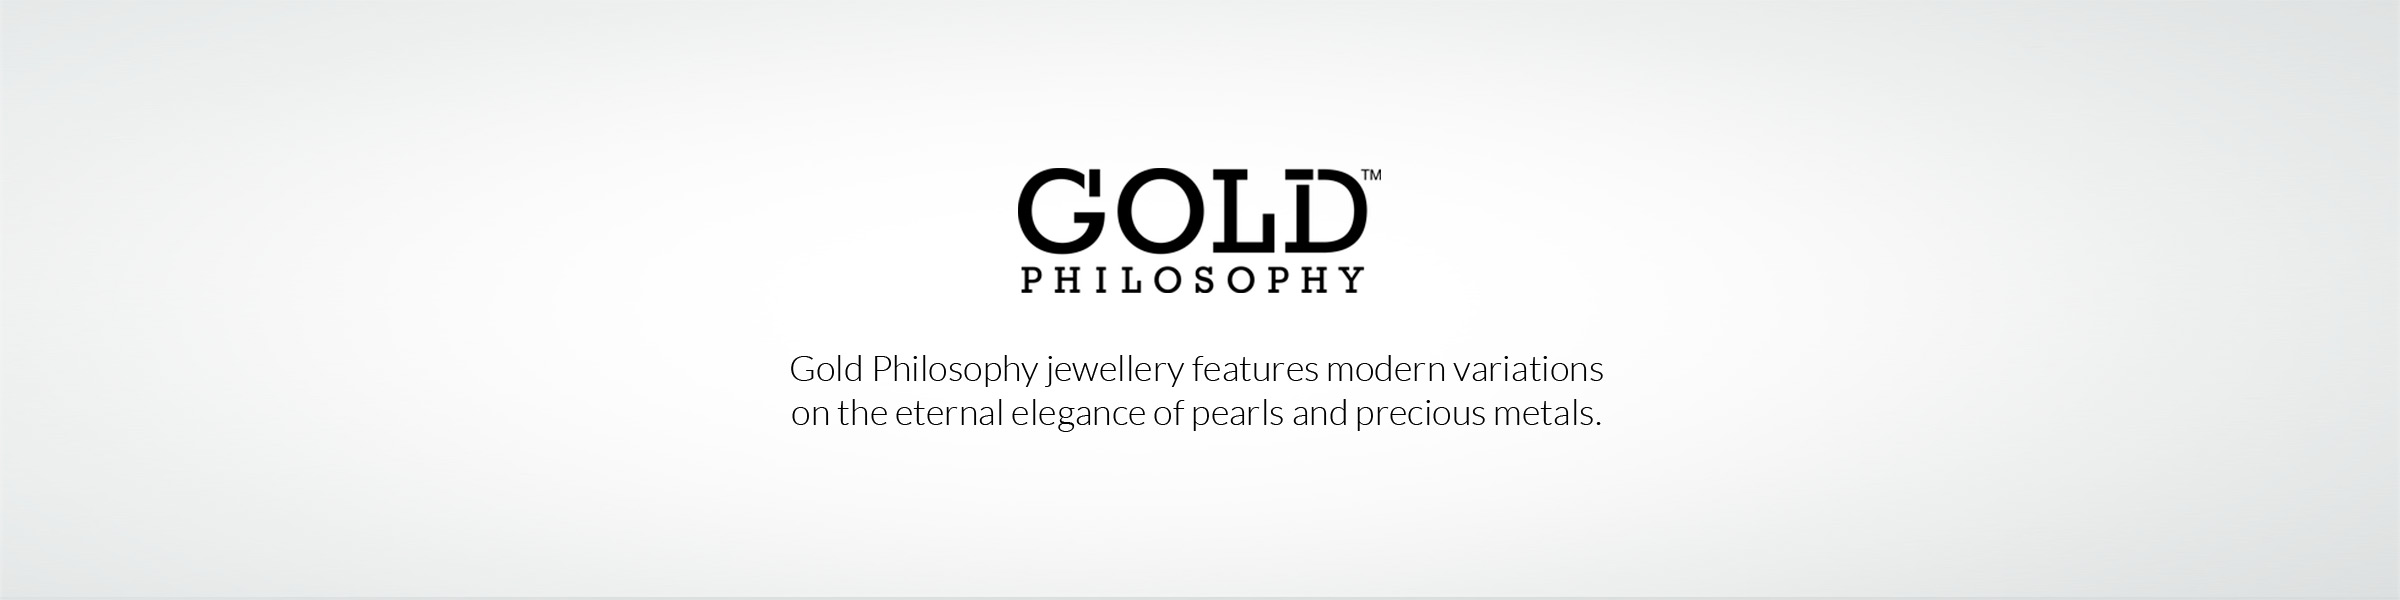 032290 Gold Philosophy